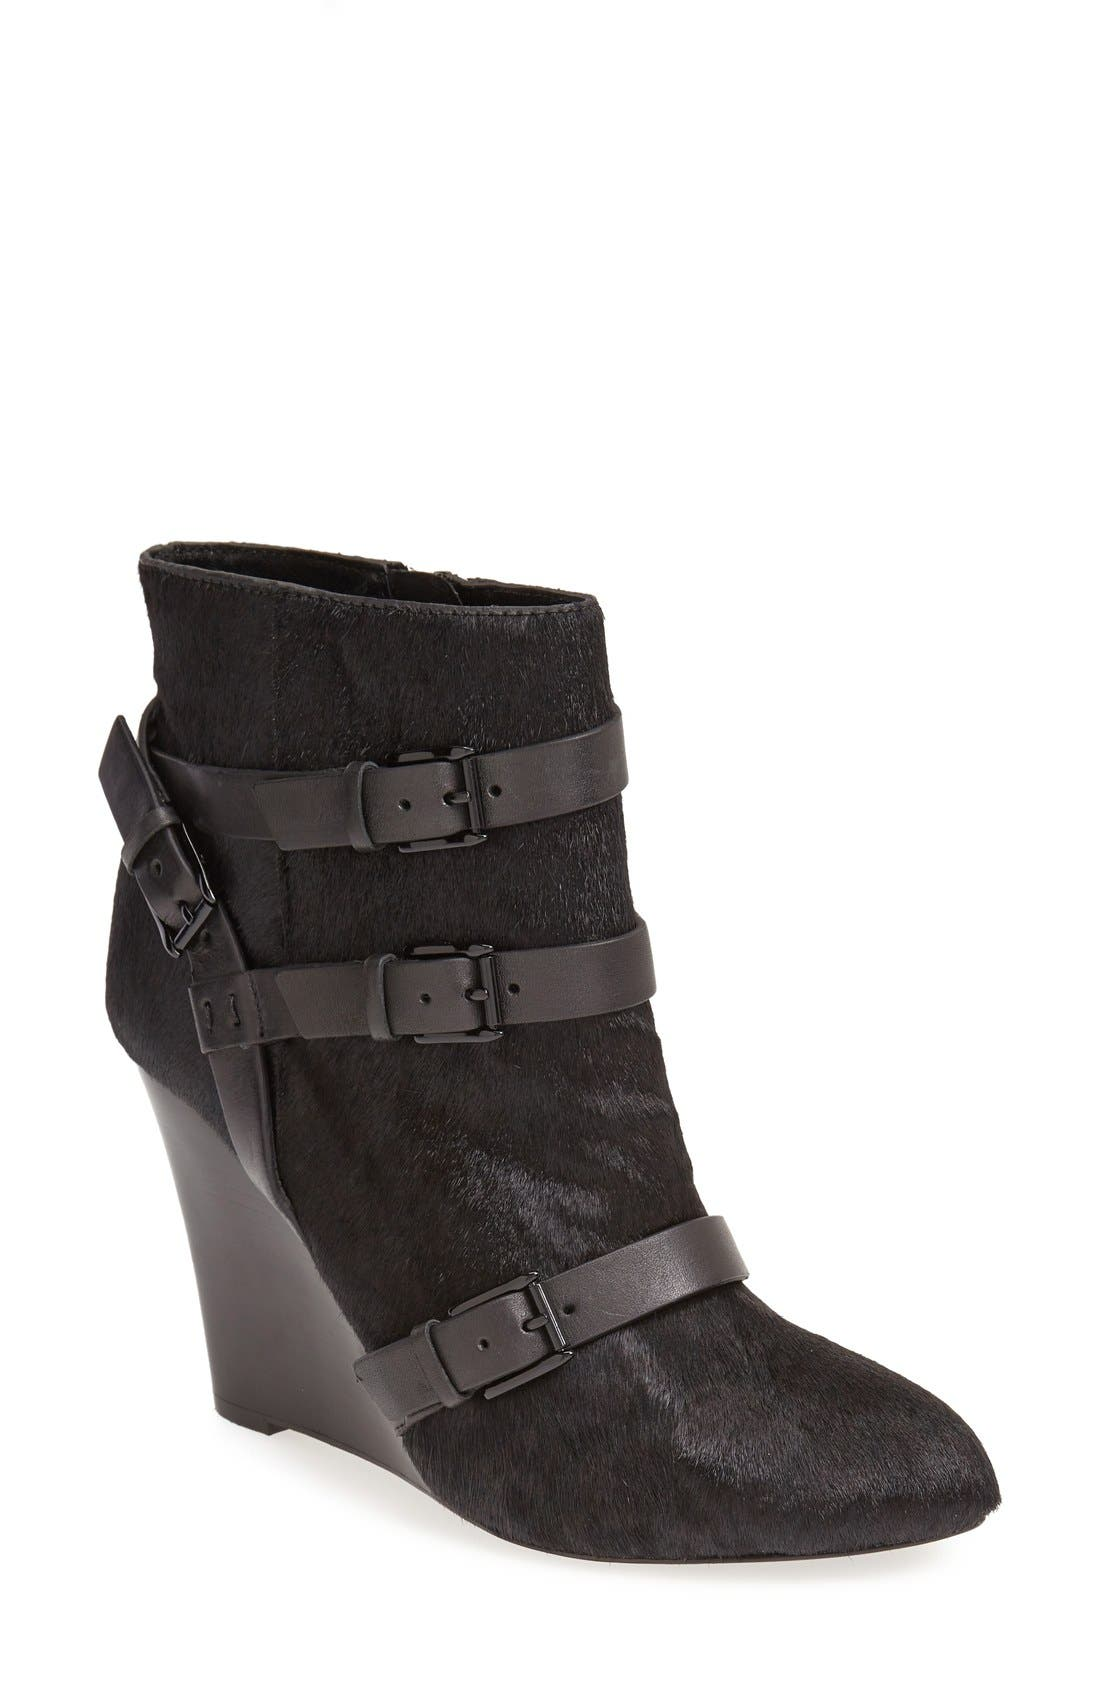 'Maggie' Wedge Bootie,                         Main,                         color, 524